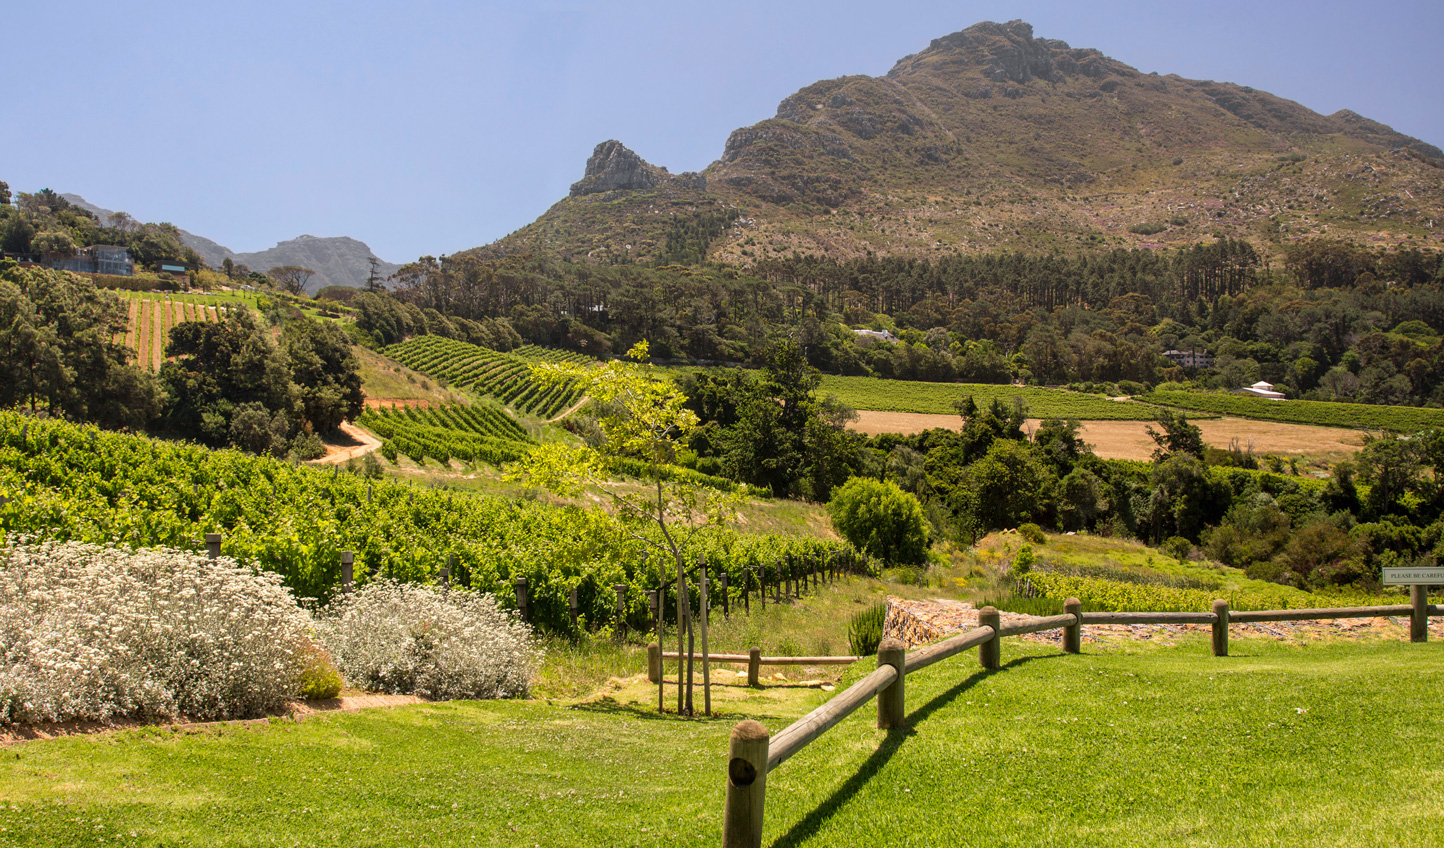 Settle into life on the farm in the Constantia Valley